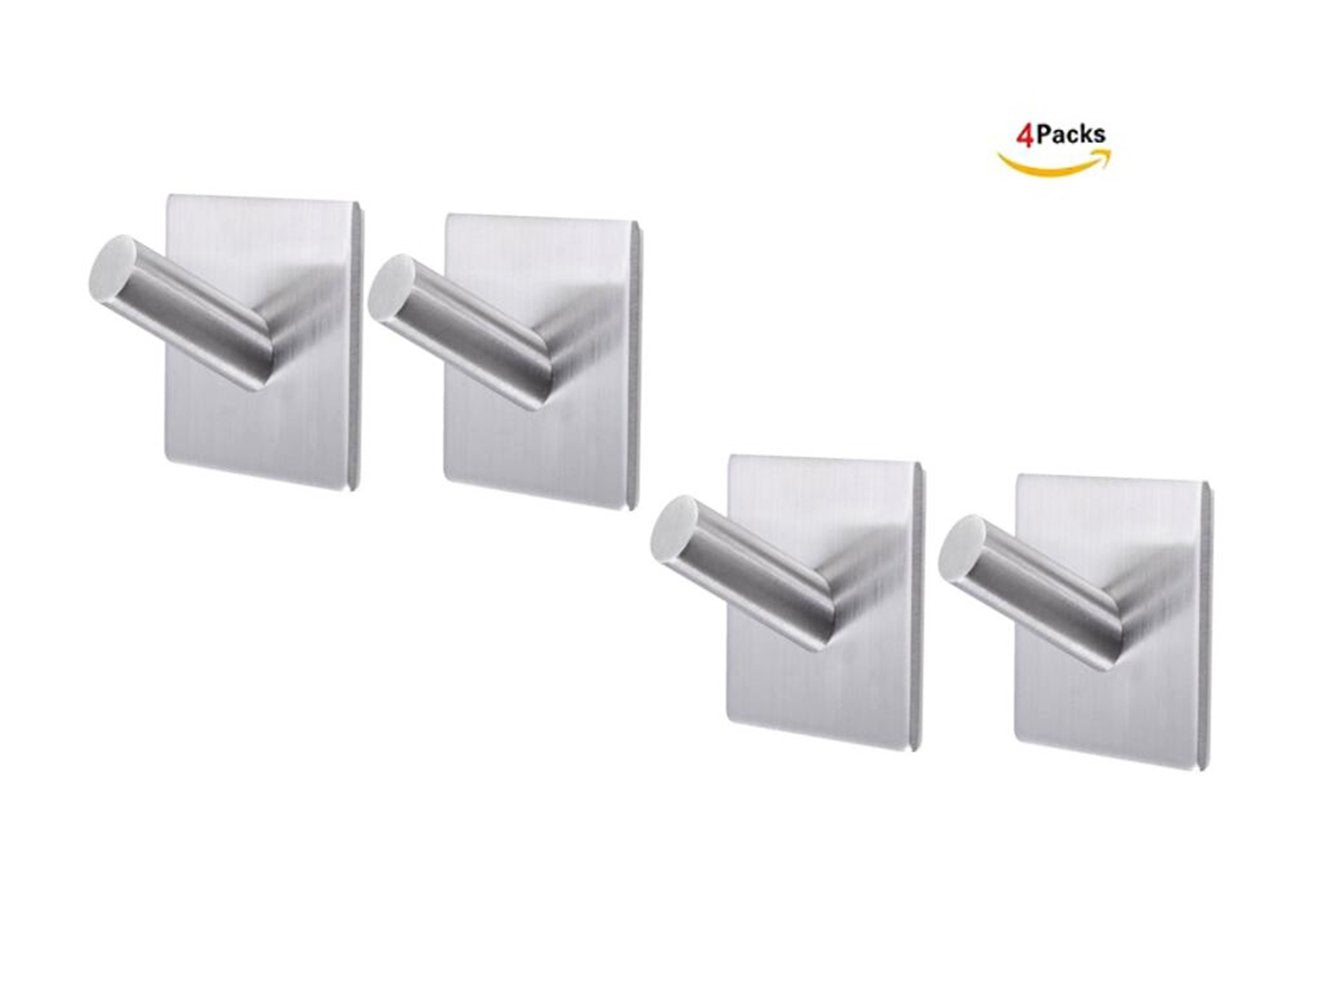 3M Self Adhesive Bath Hooks - Stainless Steel Bathroom Towel Hook,Heavy Duty Stainless Steel Coat Hanger for Hanging 4 Packs